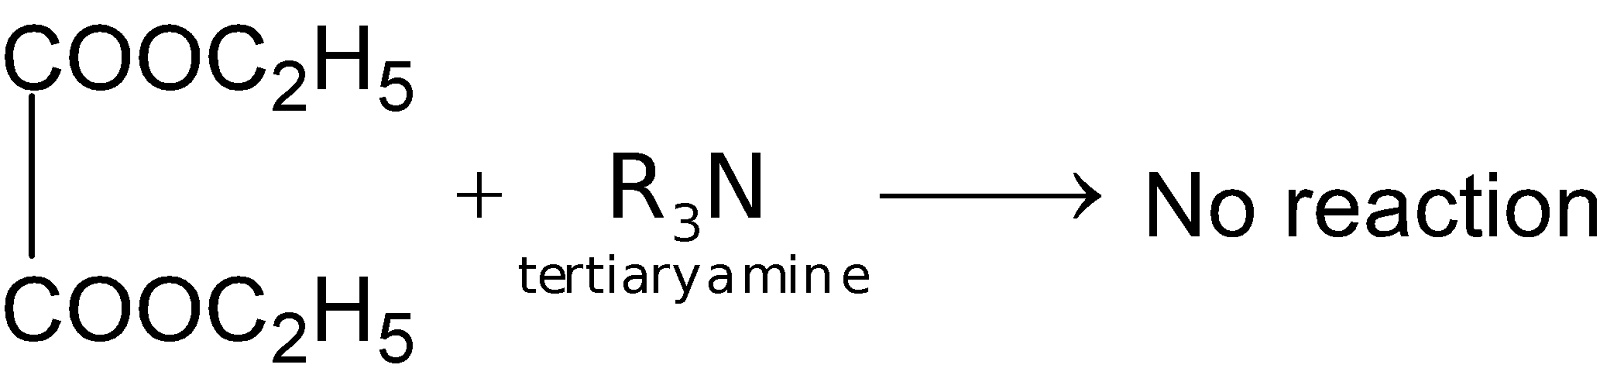 Coupling Reactions of Nitrogen and Other P block Elements in